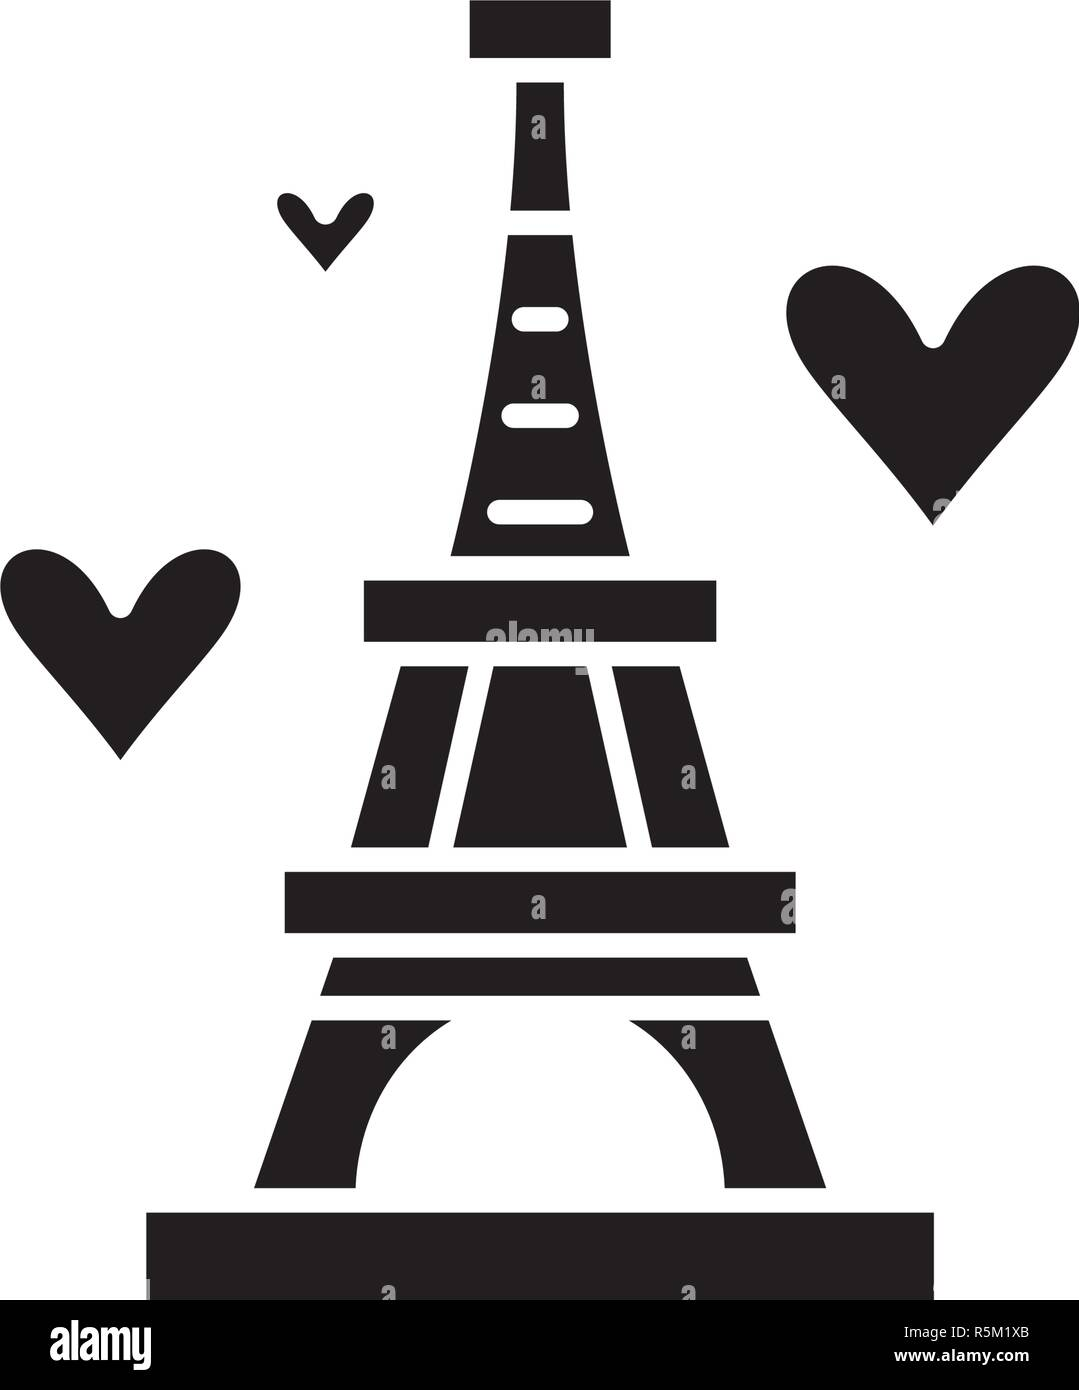 Eiffel tower black icon, vector sign on isolated background. Eiffel tower concept symbol, illustration  - Stock Vector